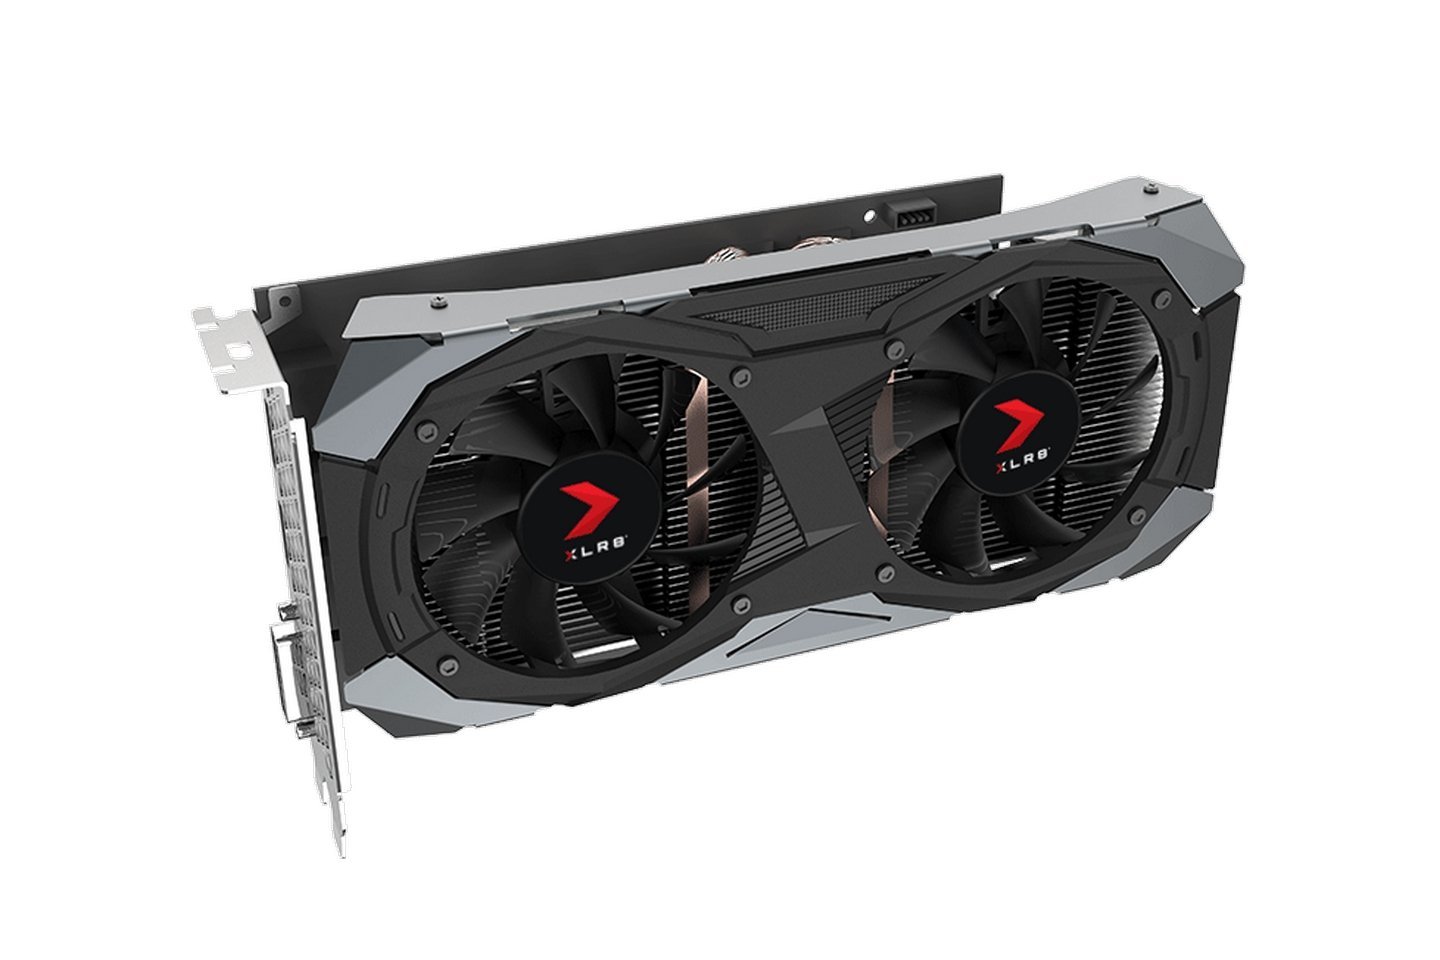 PNY GTX 1660 6GB XLR8 OC Best-In-Class Performance